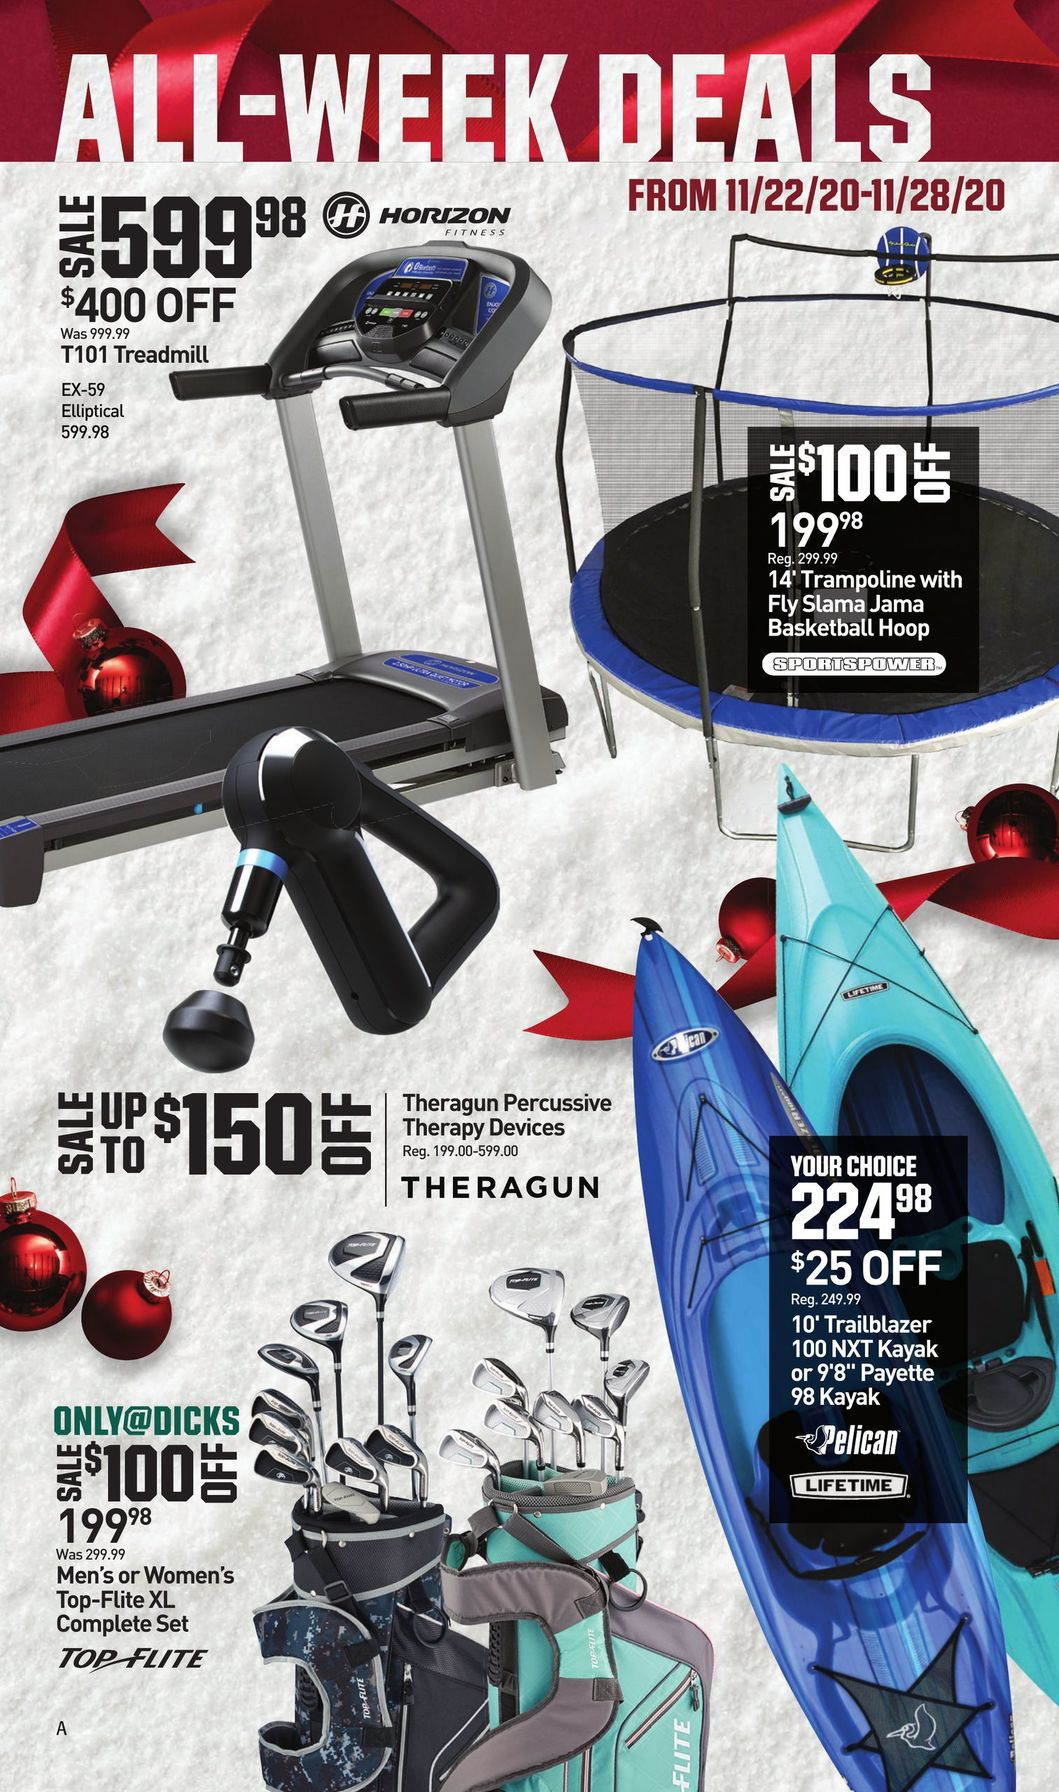 Dick's Sporting Goods Black Friday 2020 Page 6